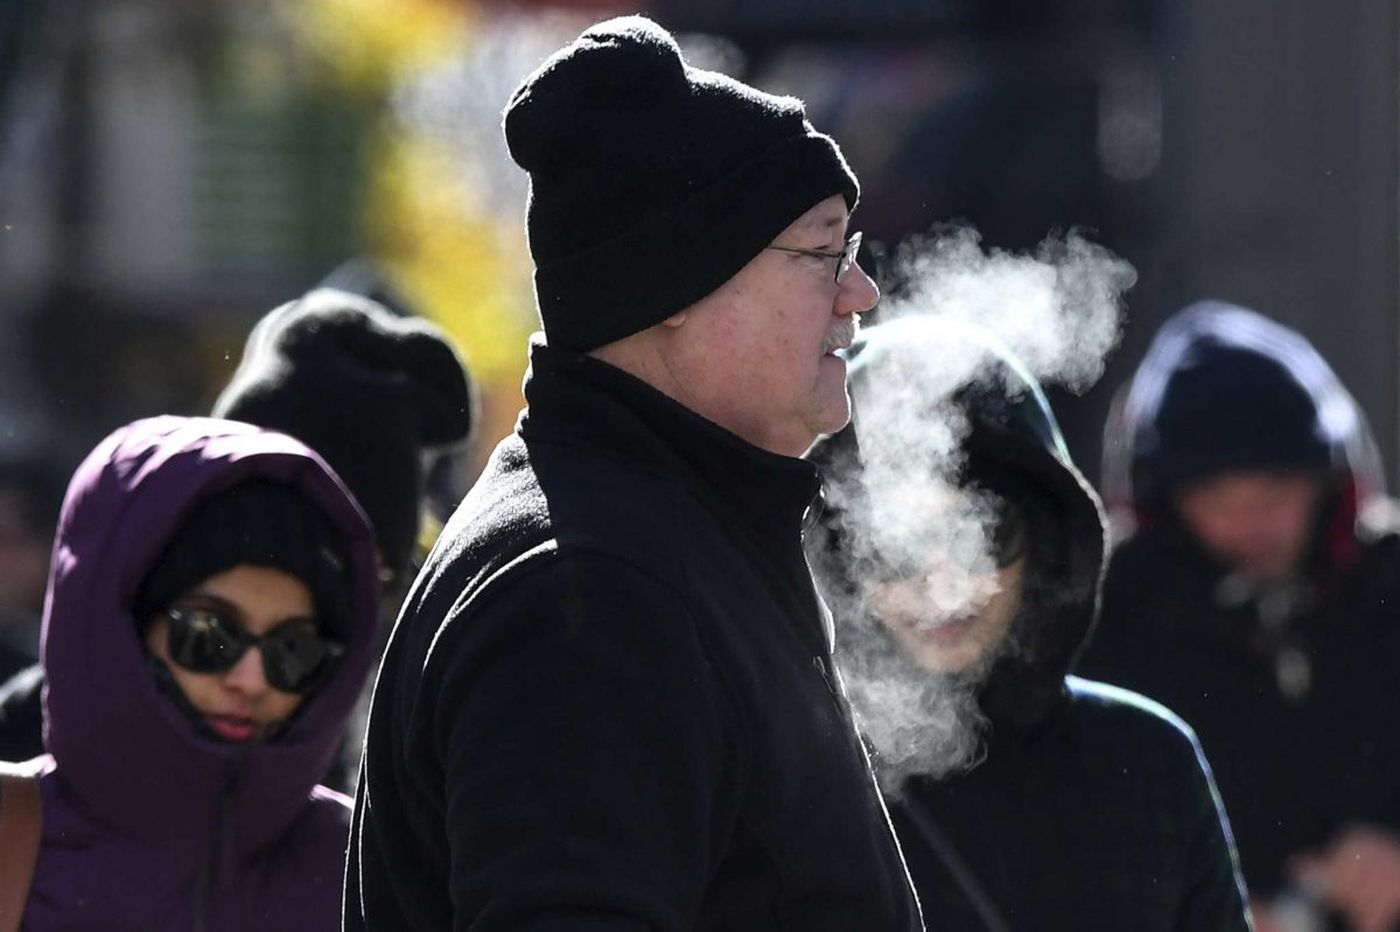 Crushing cold threatens New Year's weekend